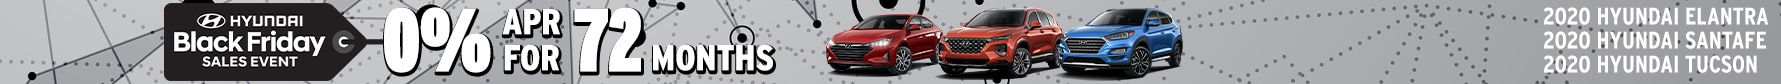 Black Friday Sales Event 0% APR for 72 Months on 2020 Elantra, 2020 Tucson, or 2020 Santa Fe